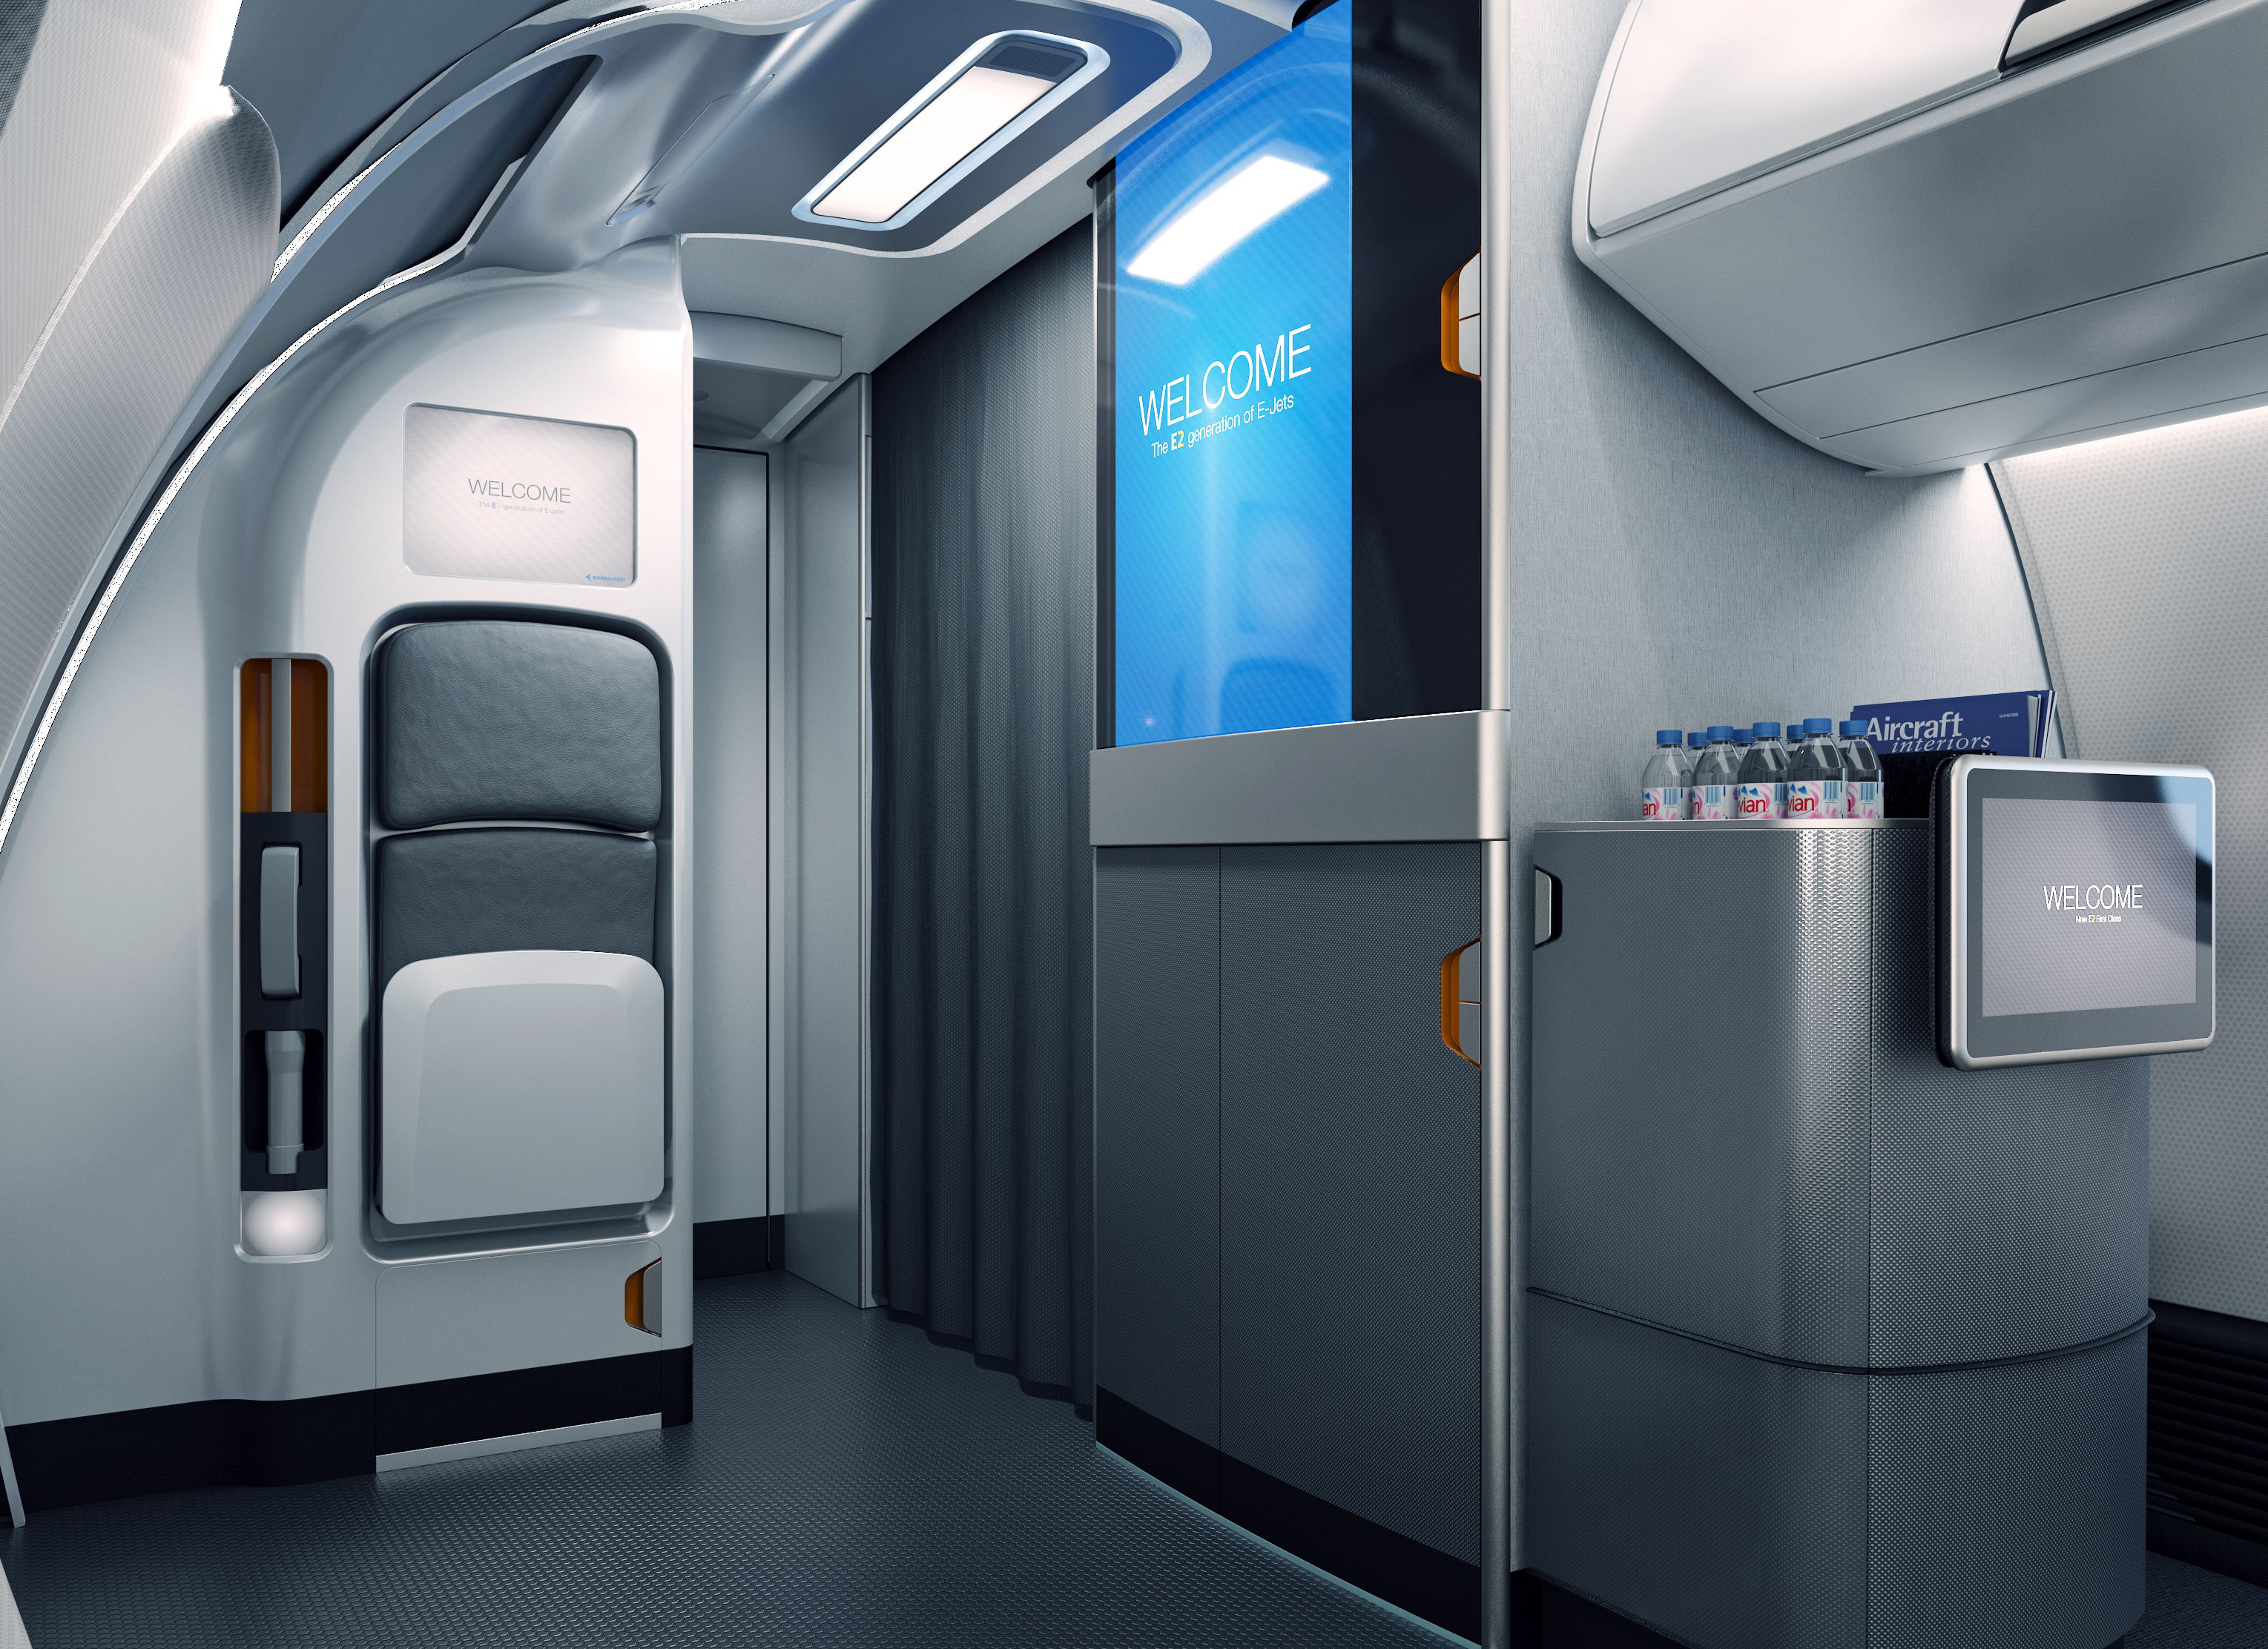 Nice Airline Cabin Luggage #3: Entrance.jpg